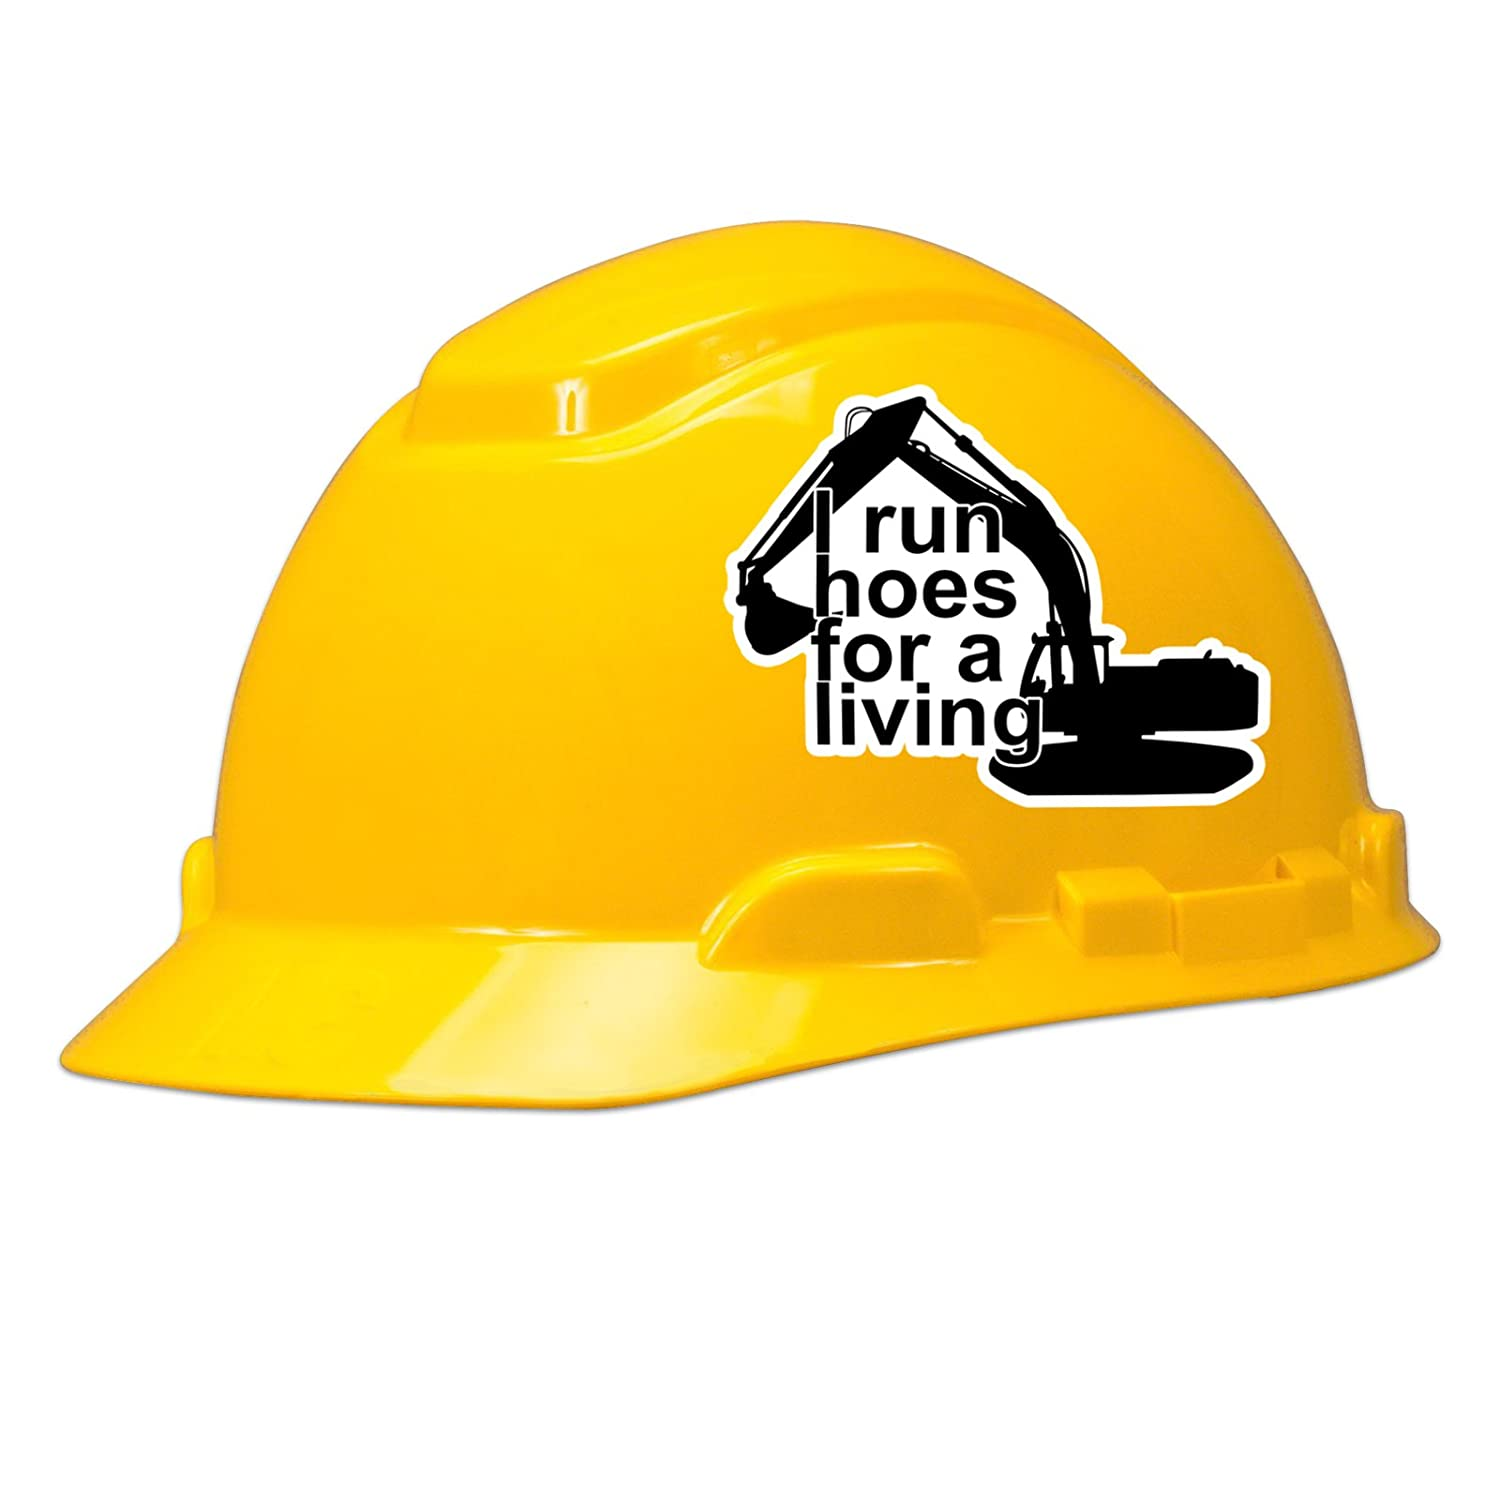 I run hoes for a living hard hat helmet sticker set of 3 stickers amazon com